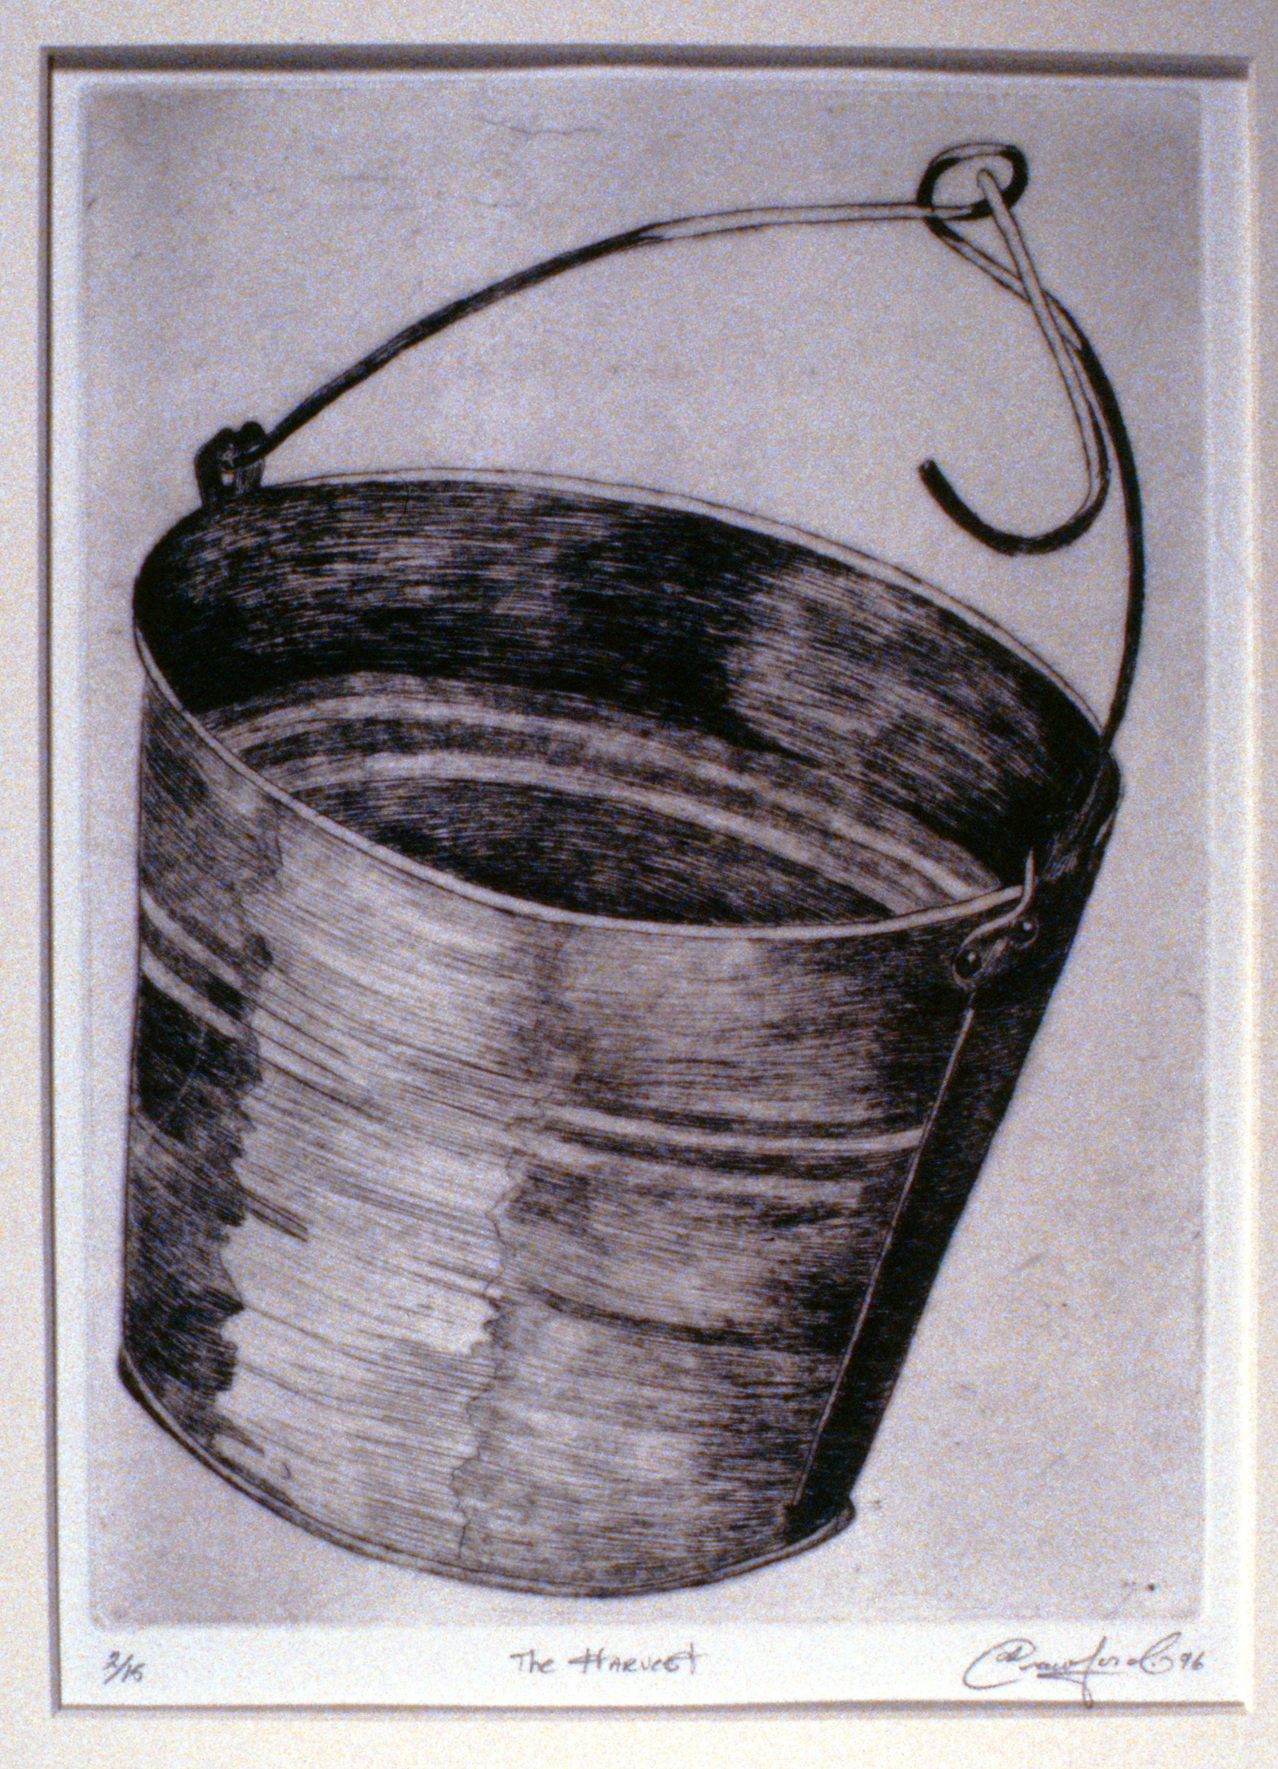 The Harvest,  1996, Jan Crawford, etching, edition 2/15, 27.5 x 20 cm, 1997.03.03. Gift of the artist.